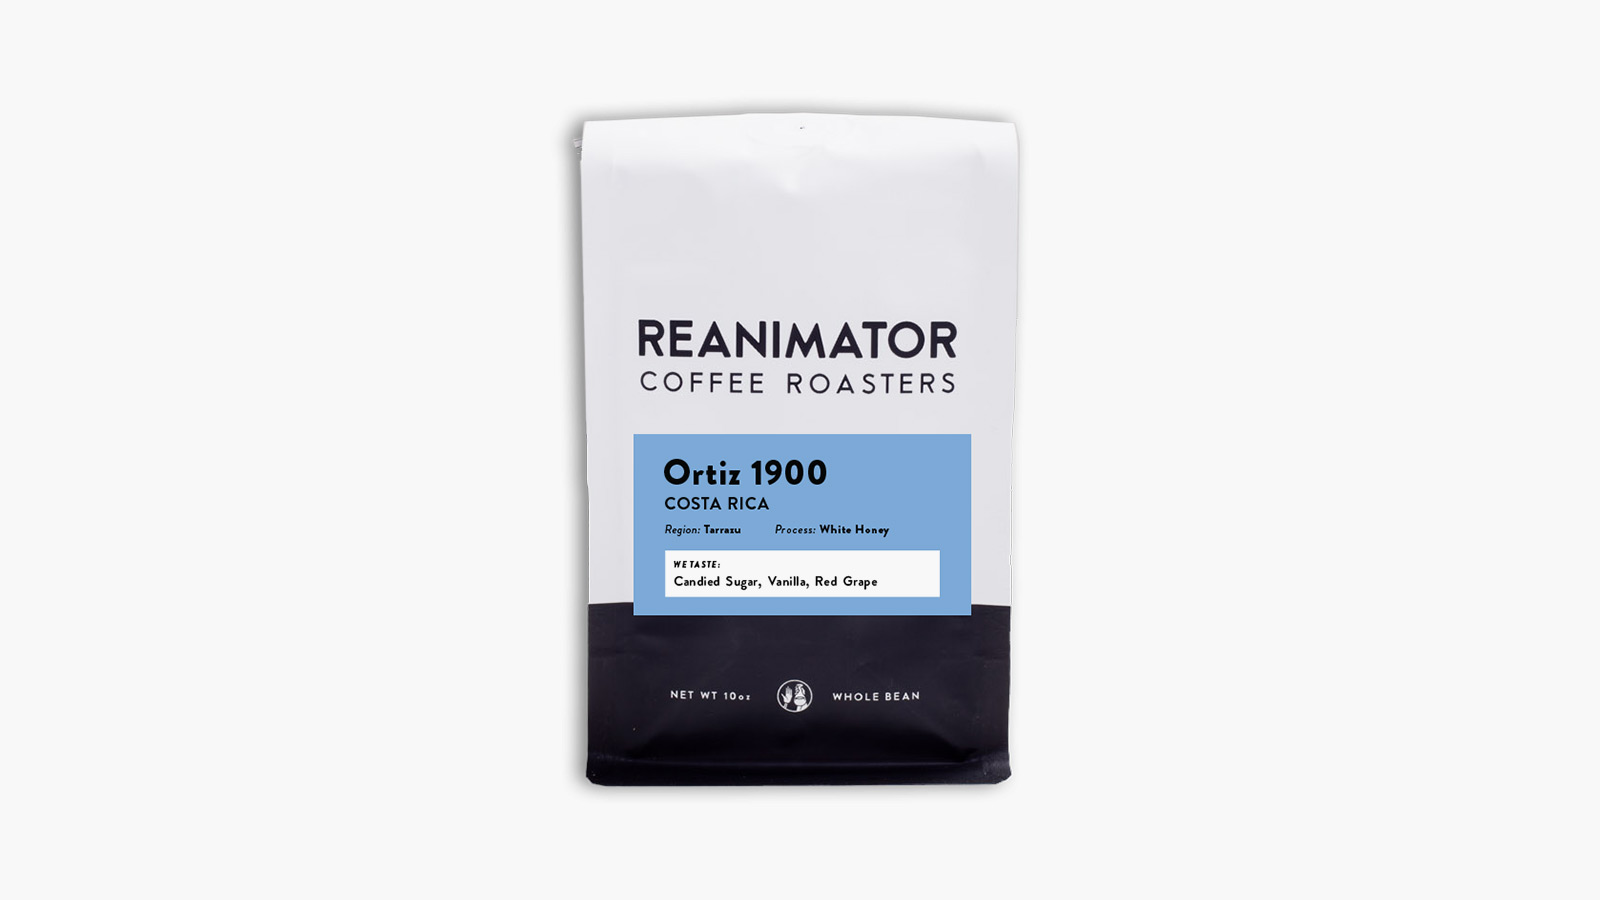 Reanimator Coffee Roasters Costa Rica Ortiz 1900 Coffee